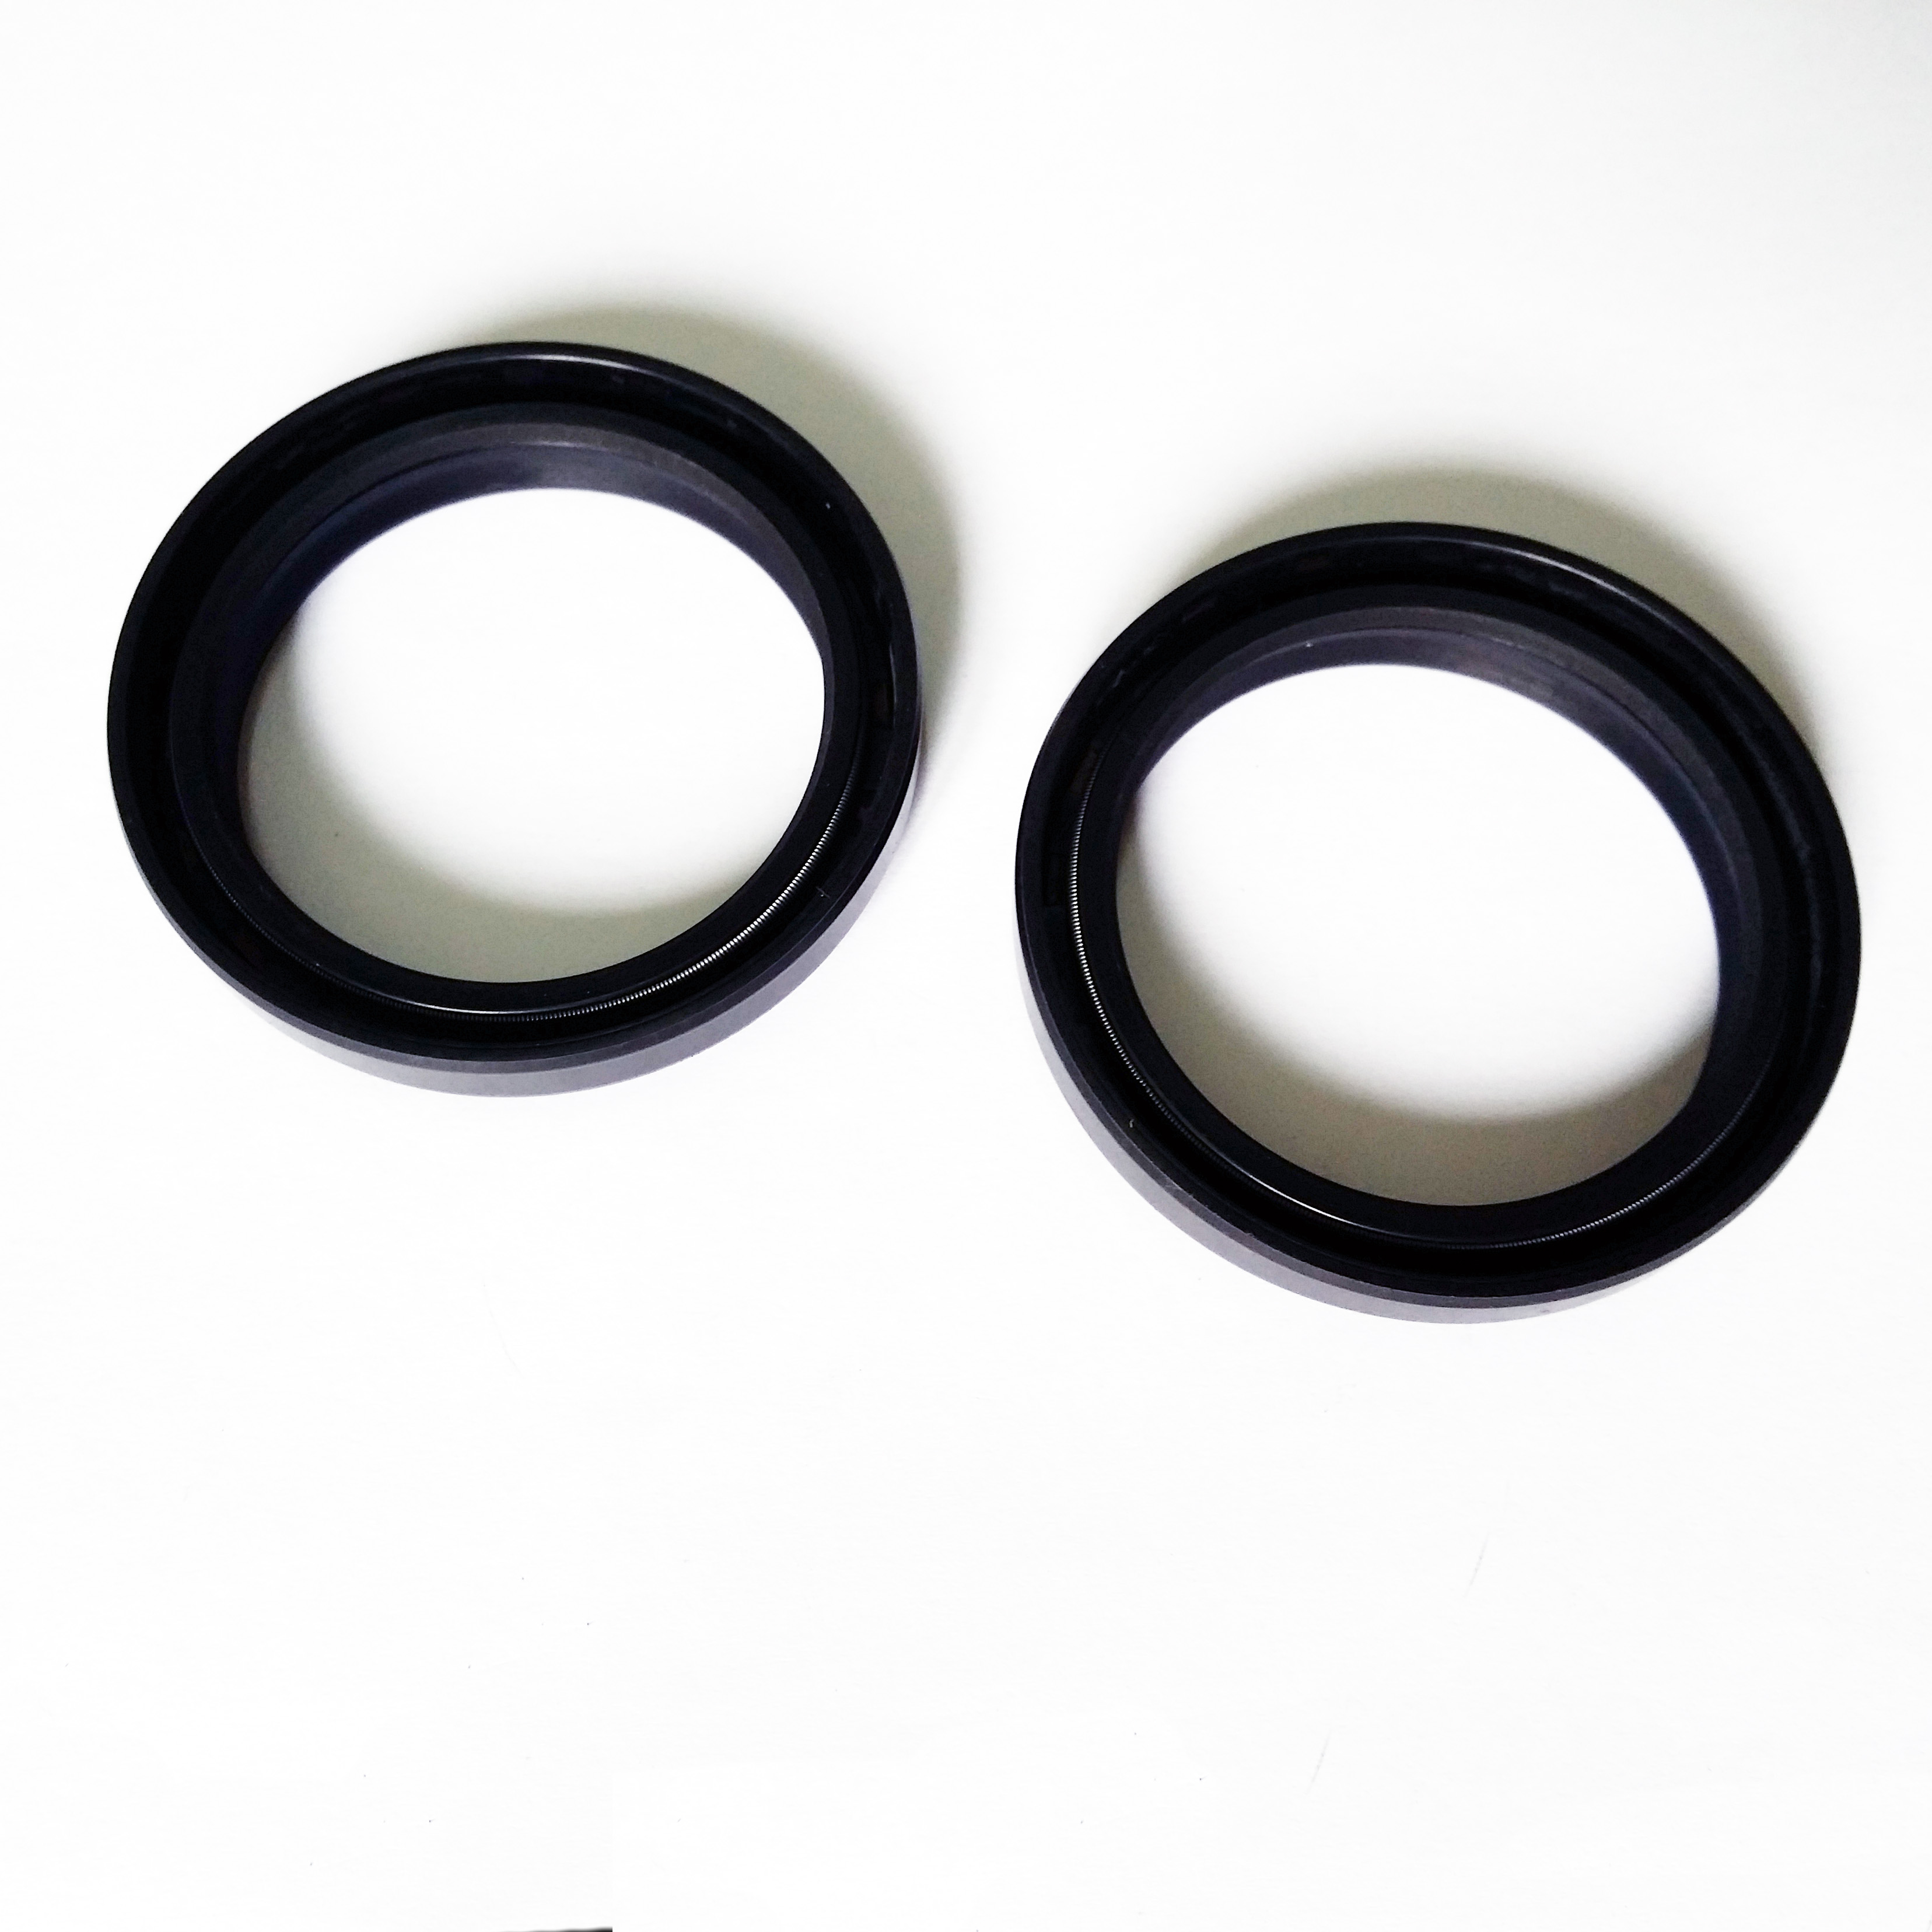 K-Tech Kawasaki KX250 1991-1995 NOK Front Fork Oil Seals 43x55x9.5mm